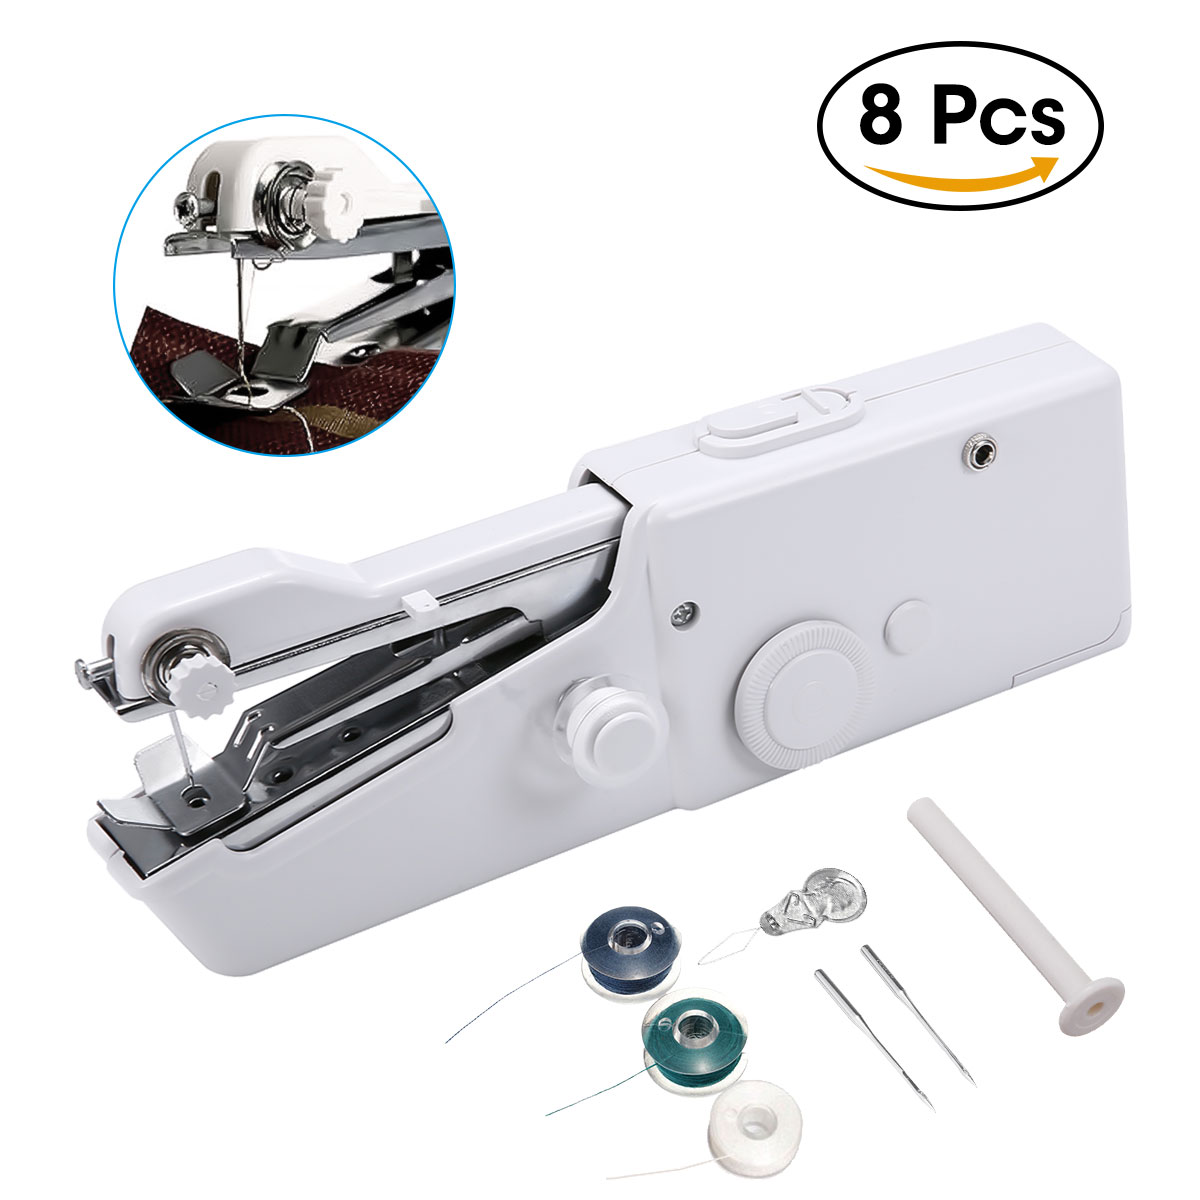 Handheld Portable Stitch Sew Cordless Handy Sewing Machine Quick Repair Tool Universal for DIY cordle Clothing Denim Apparel Sewing Fabric Zippers Crafts Supplies